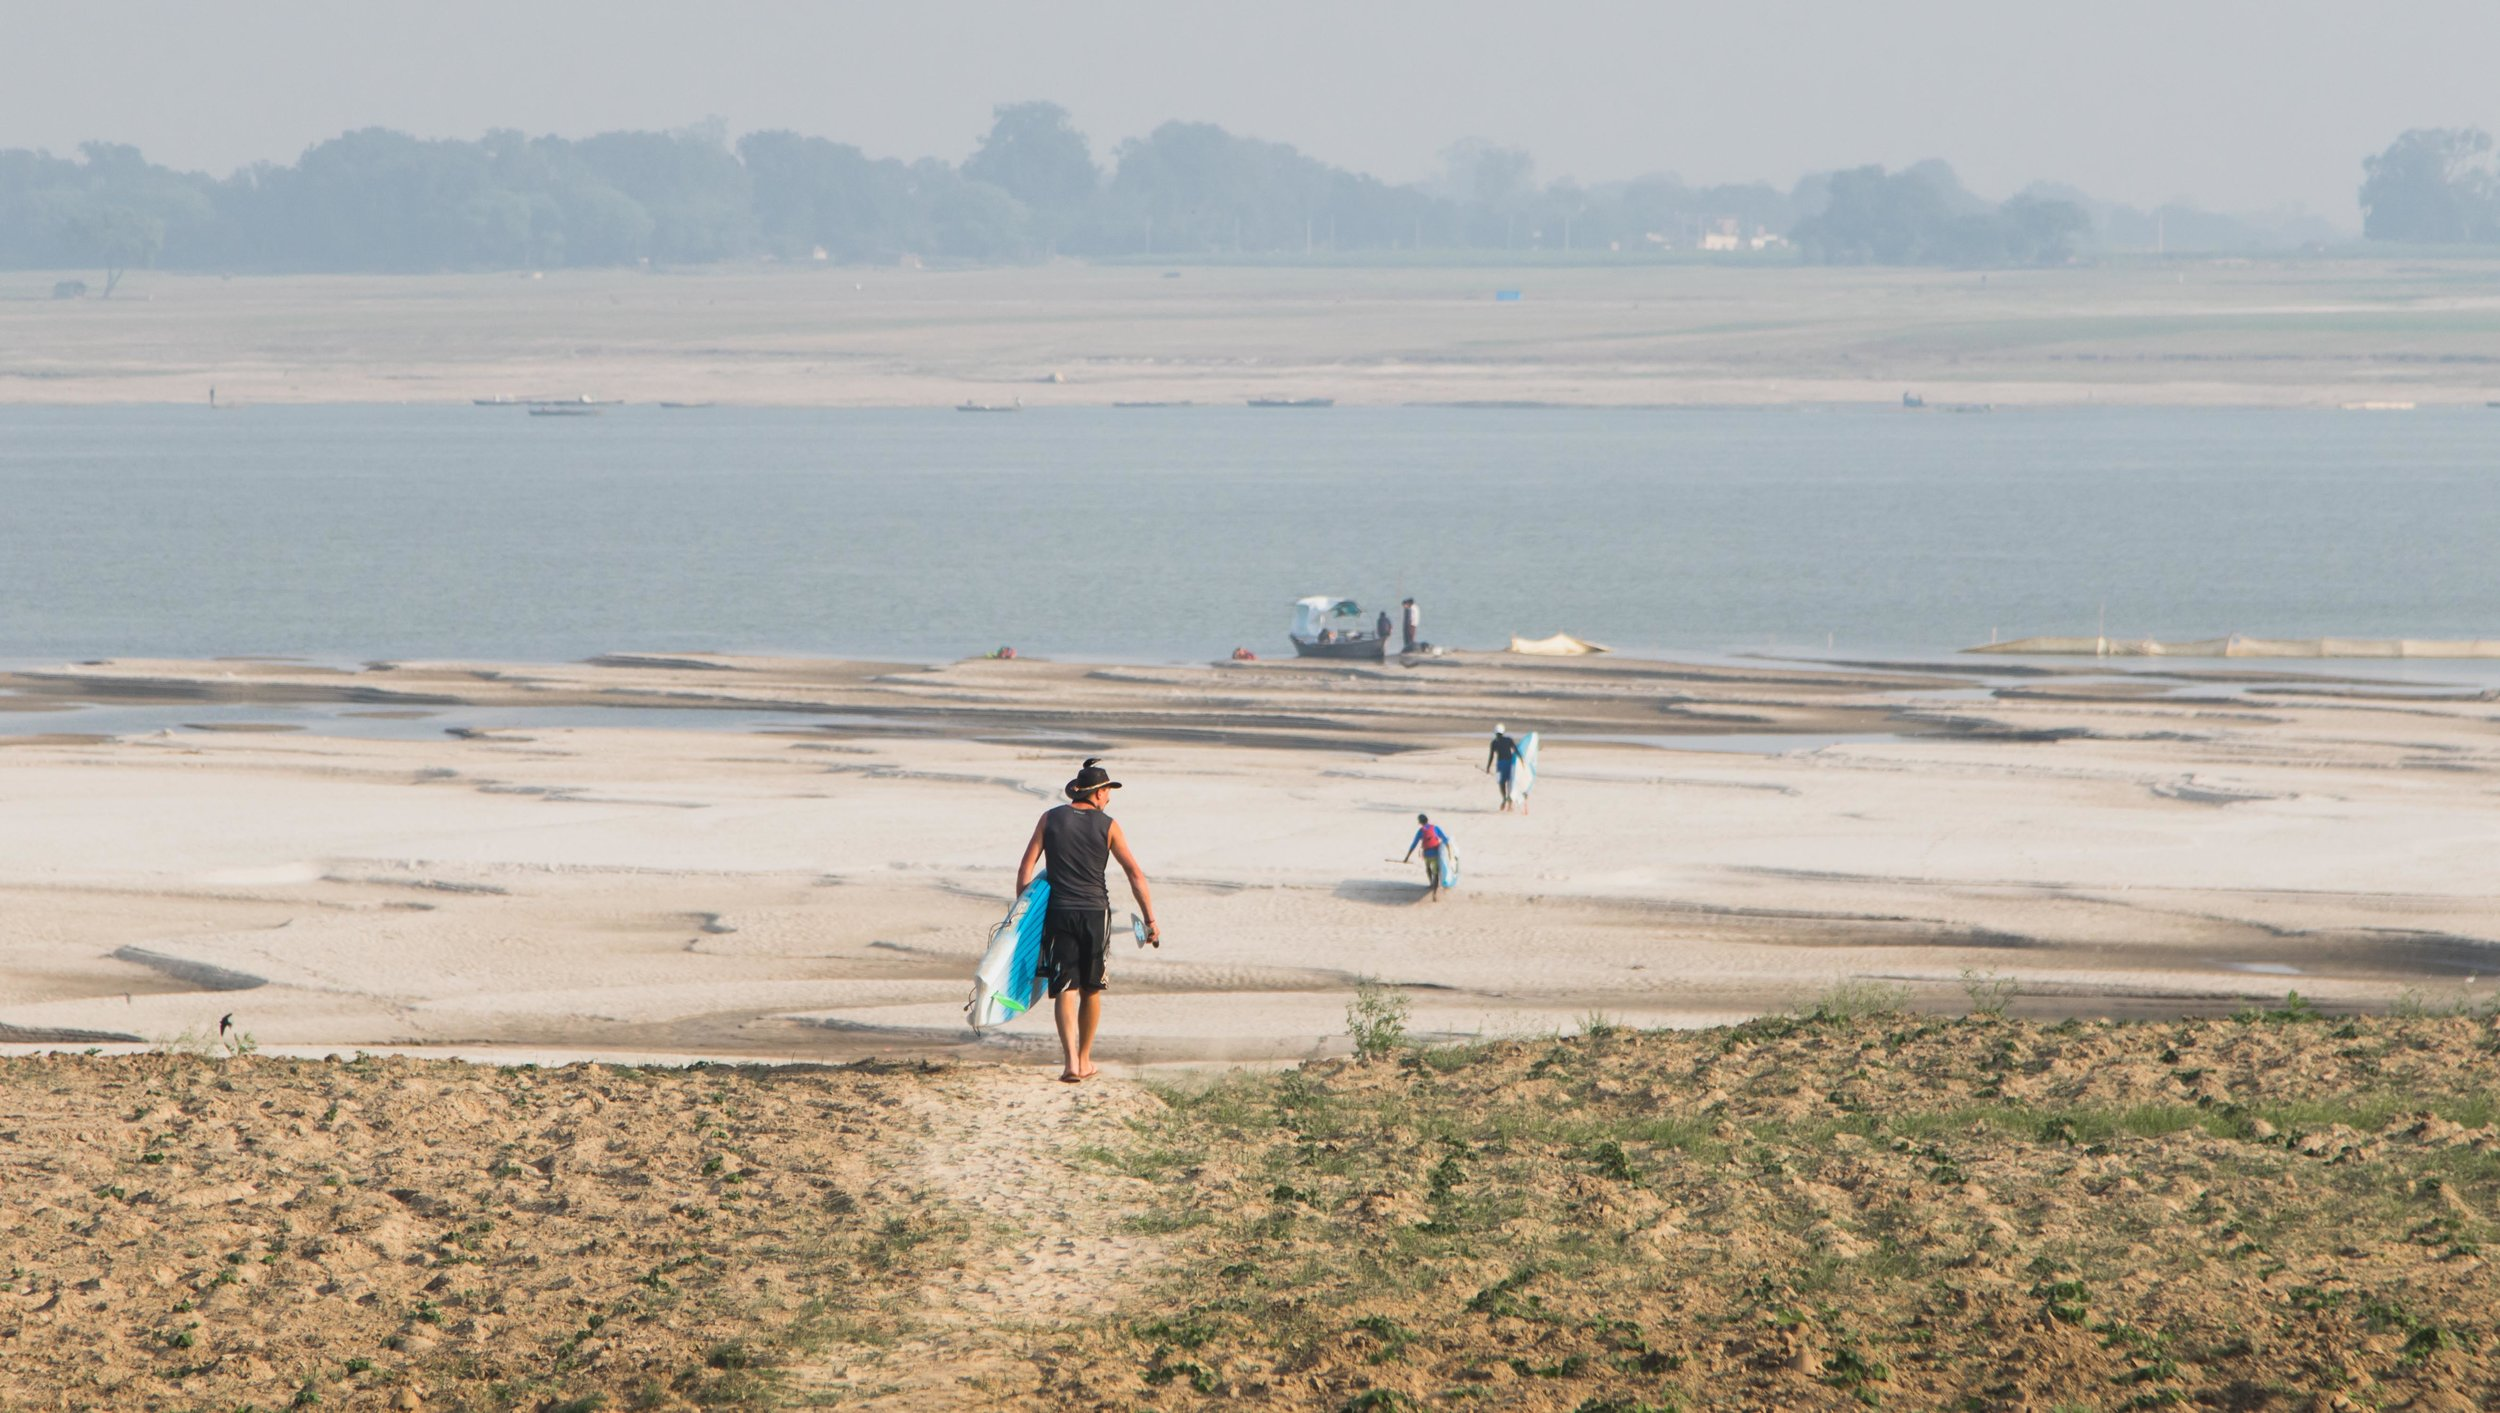 The team head out for another day on the Ganges